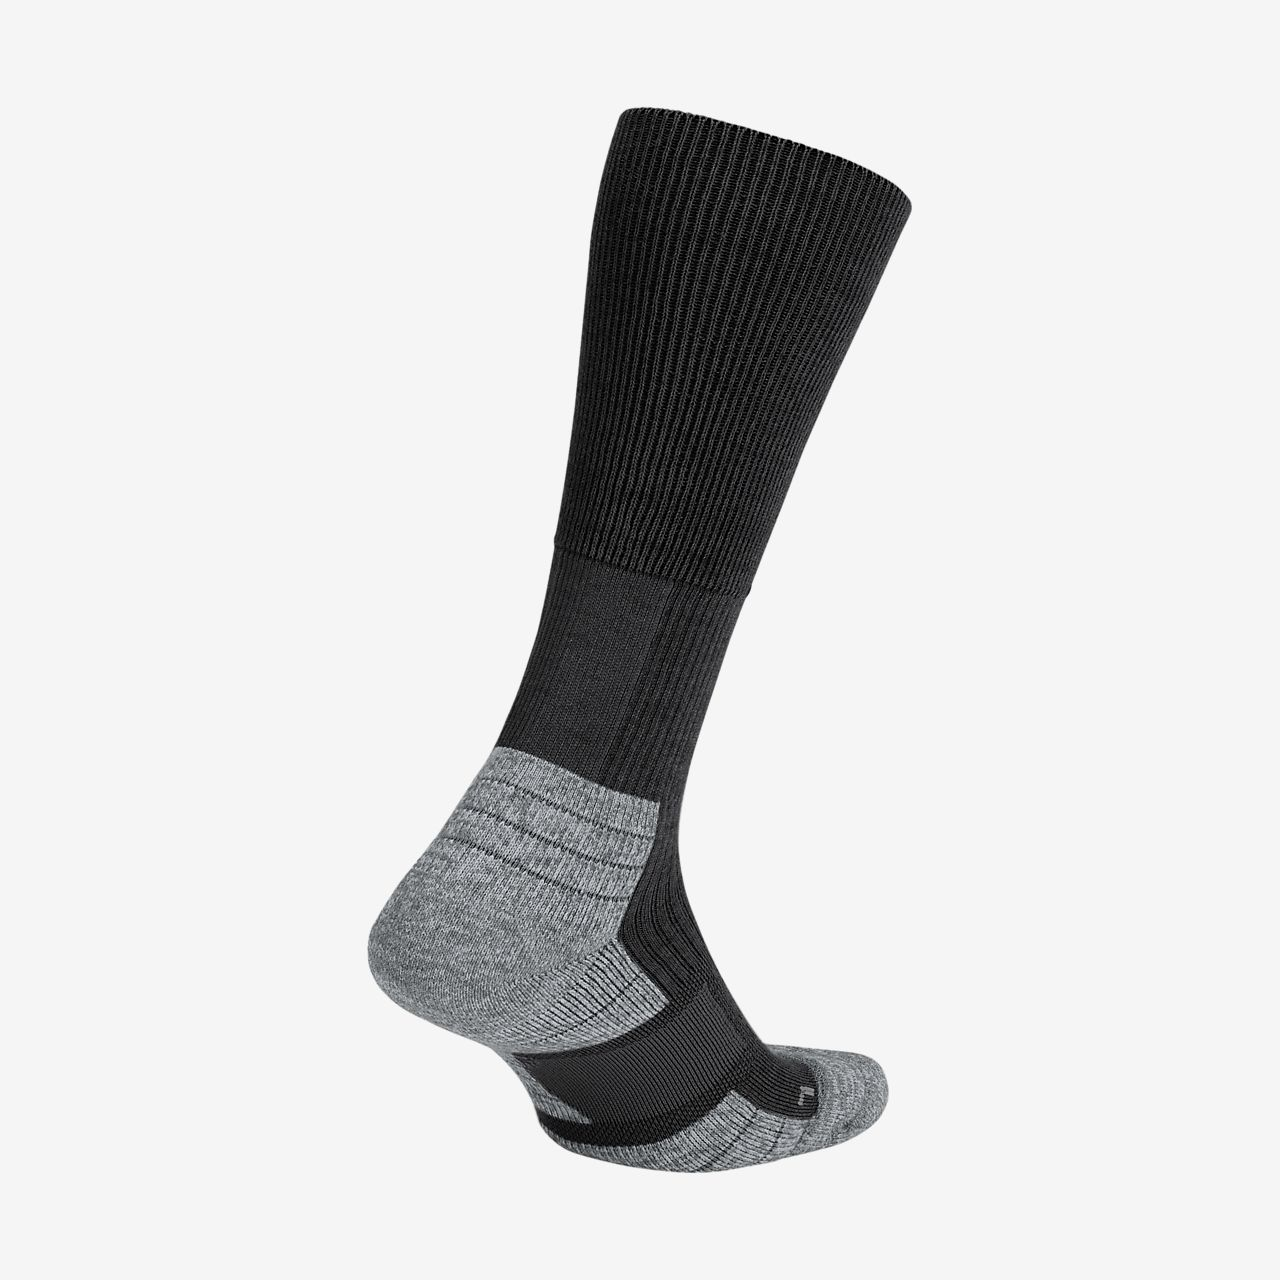 Nike Special Field Training Crew Socks